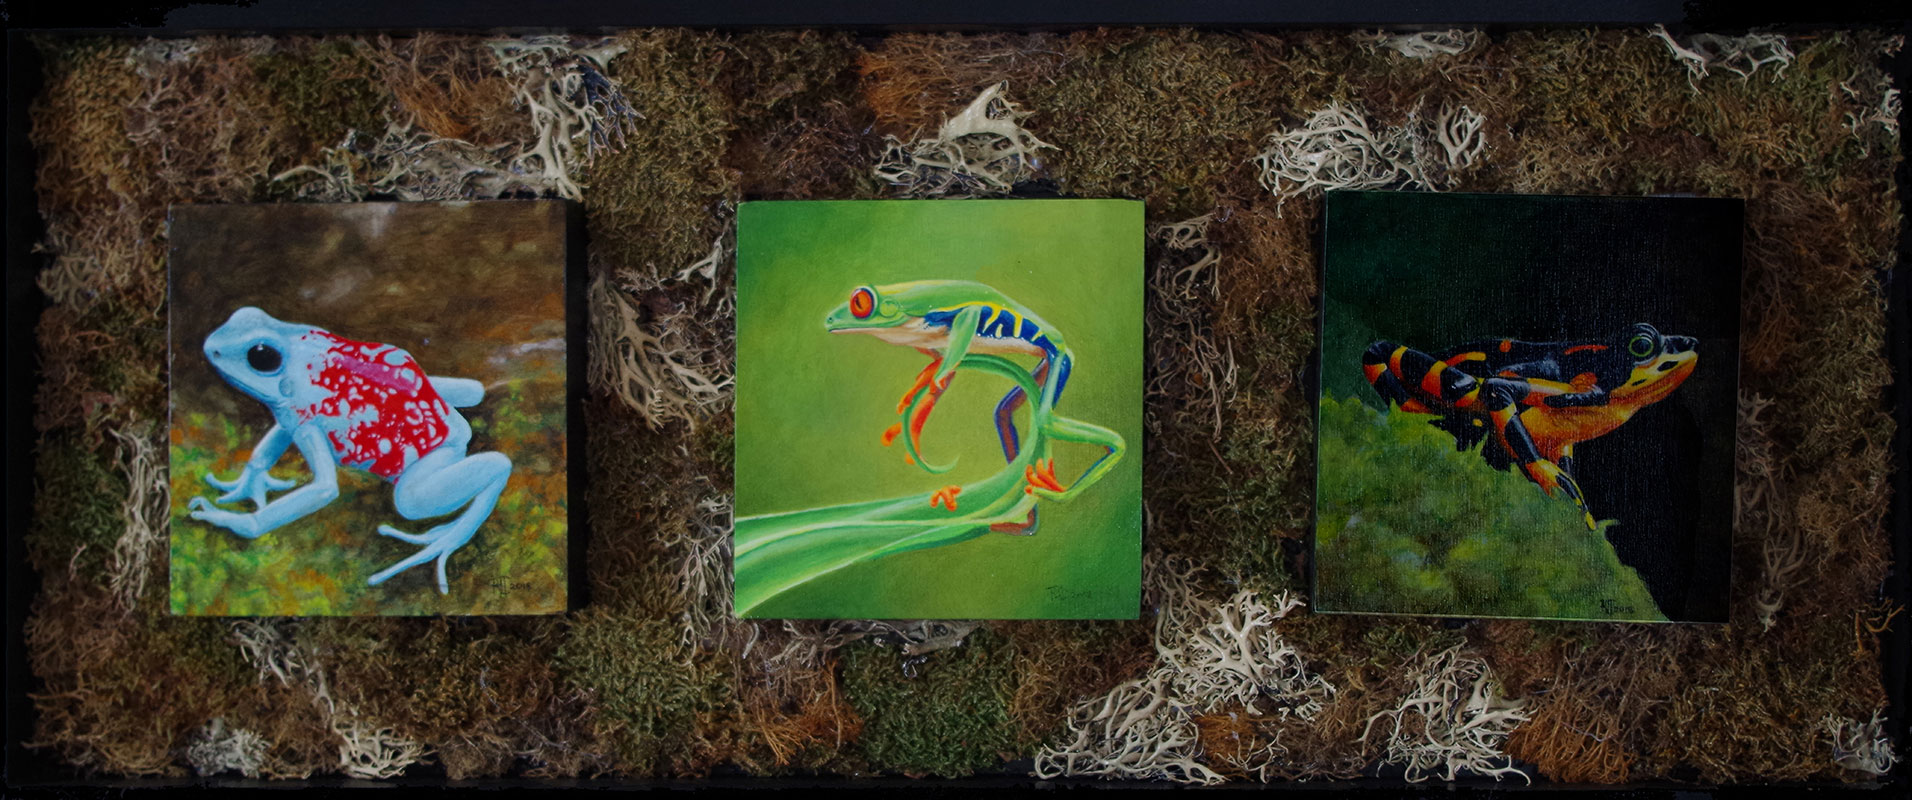 The Sopranos #1 Poison arrow frog, Red eyed tree frog, Harlequin frog by Bob 'Omar' Tunnoch